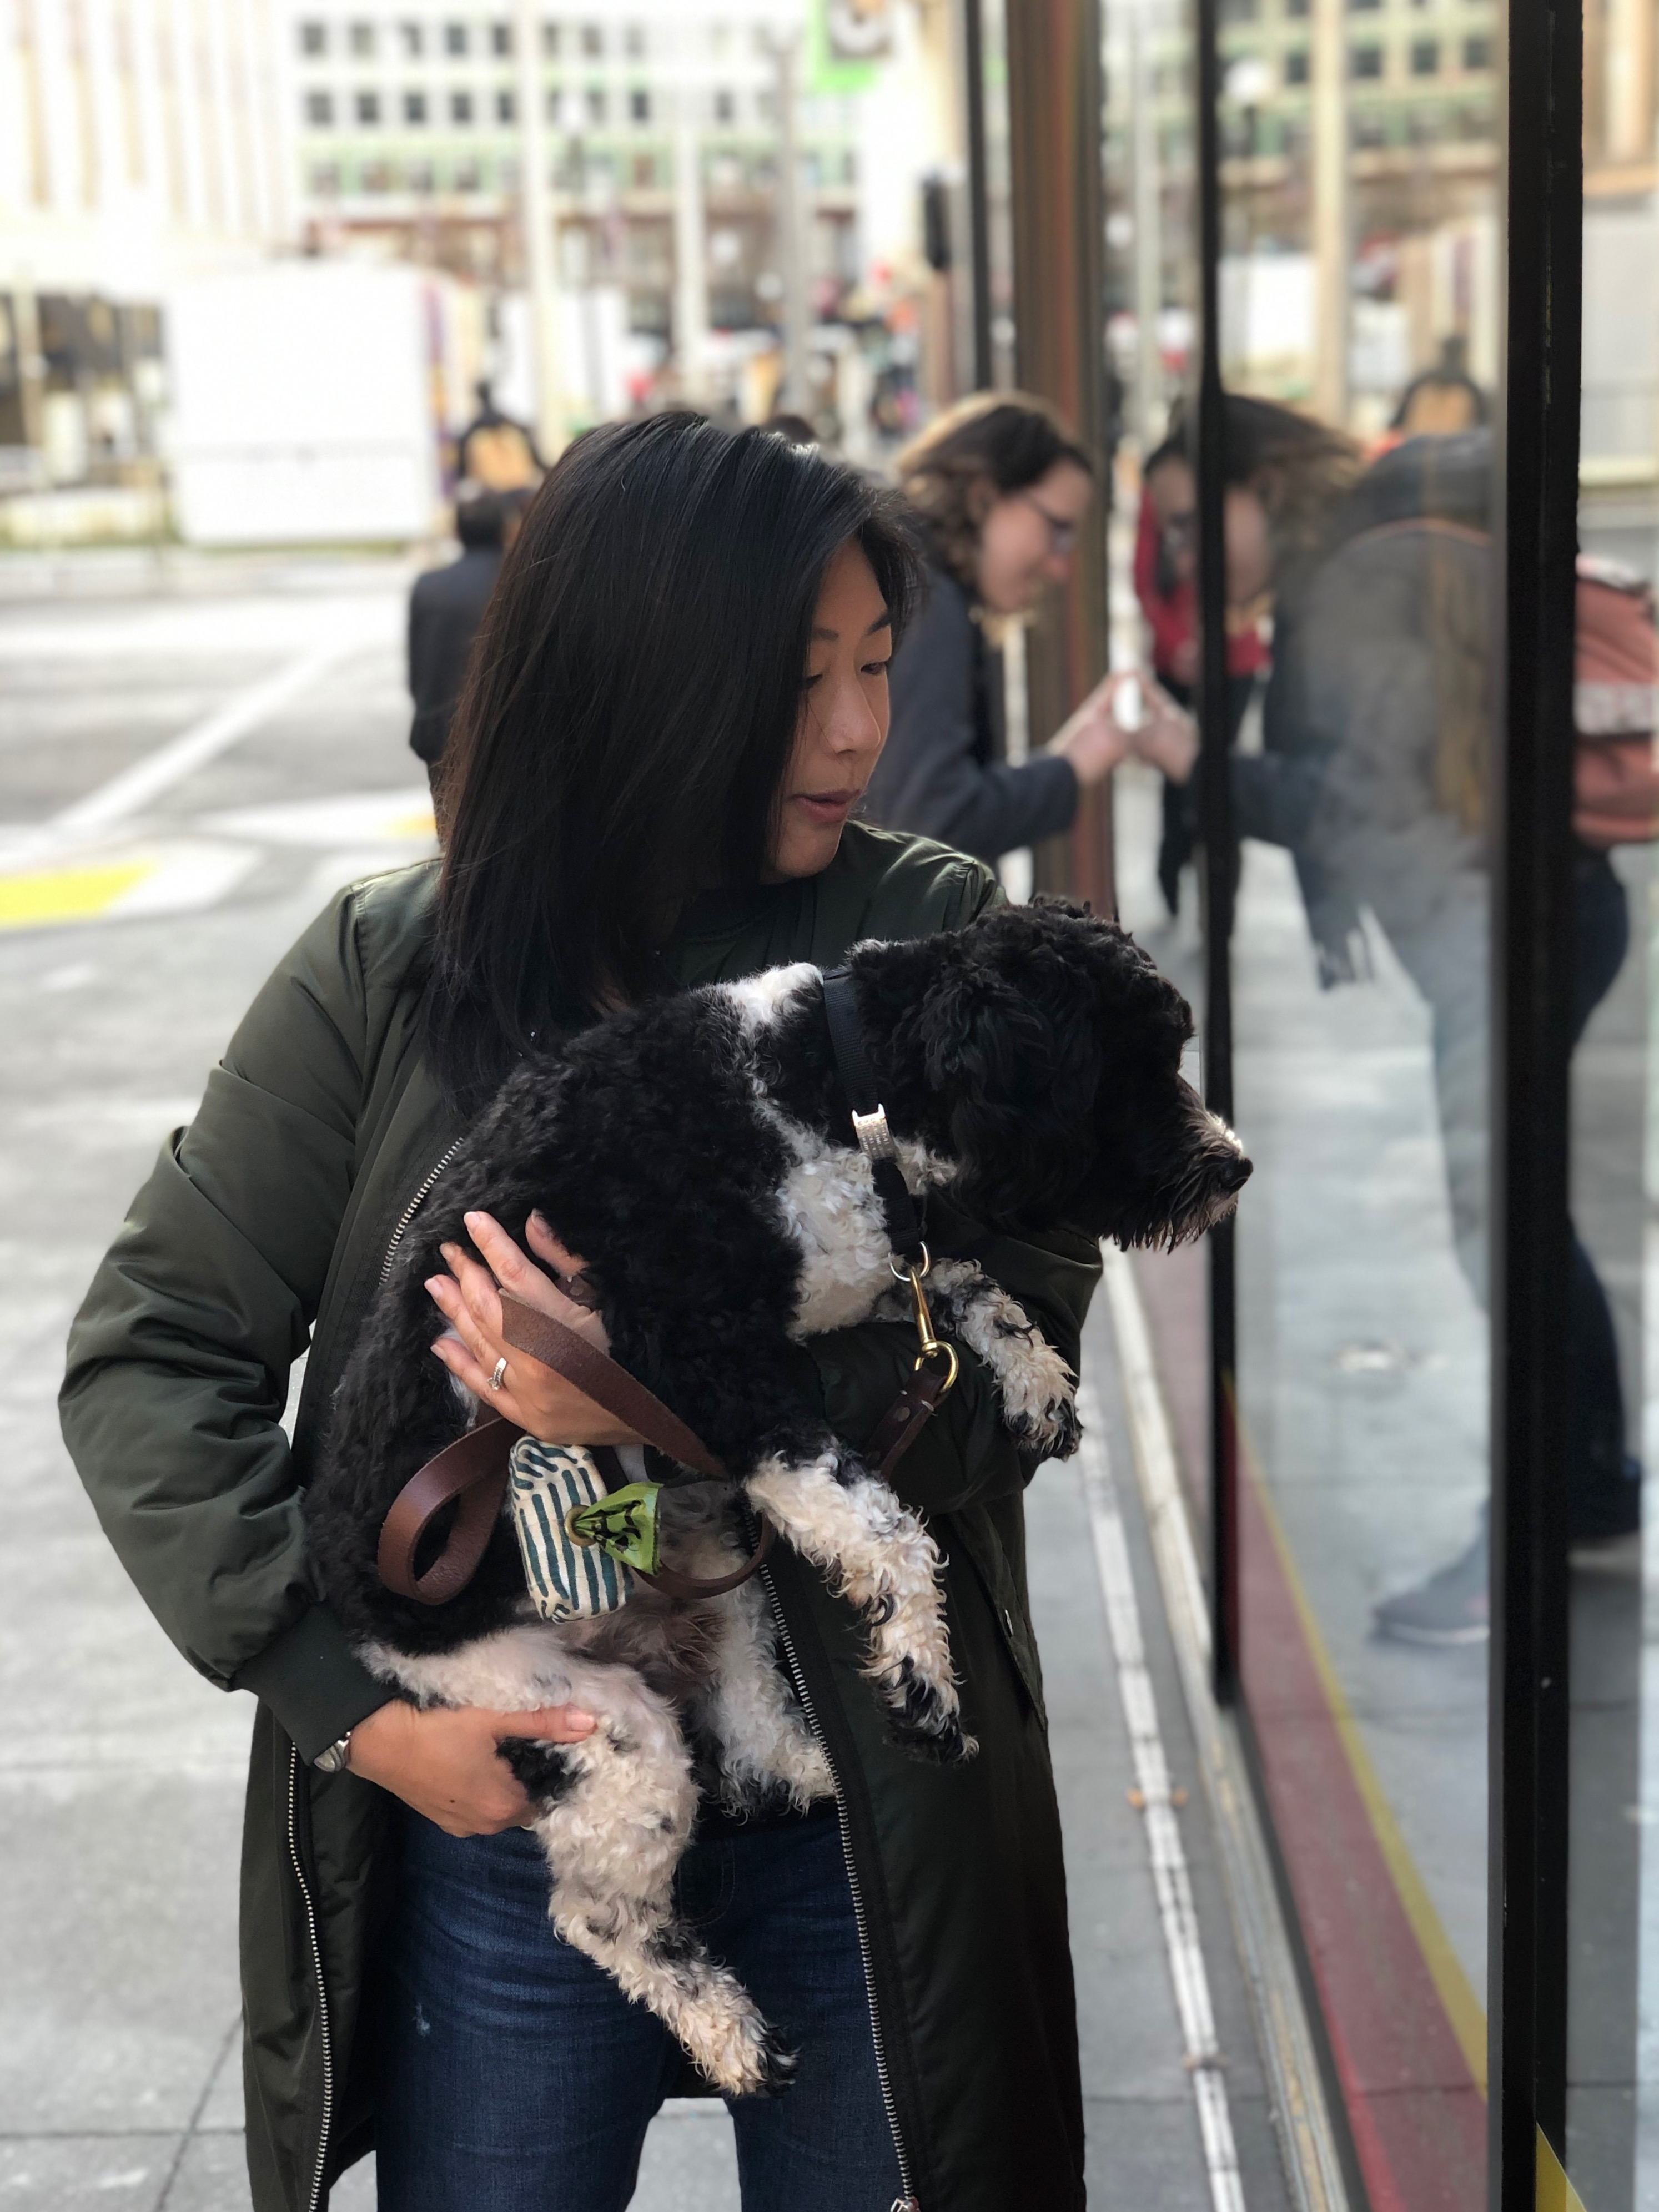 Woman Holding Schnauzer Poodle Mix While They Both Look In A Store Window